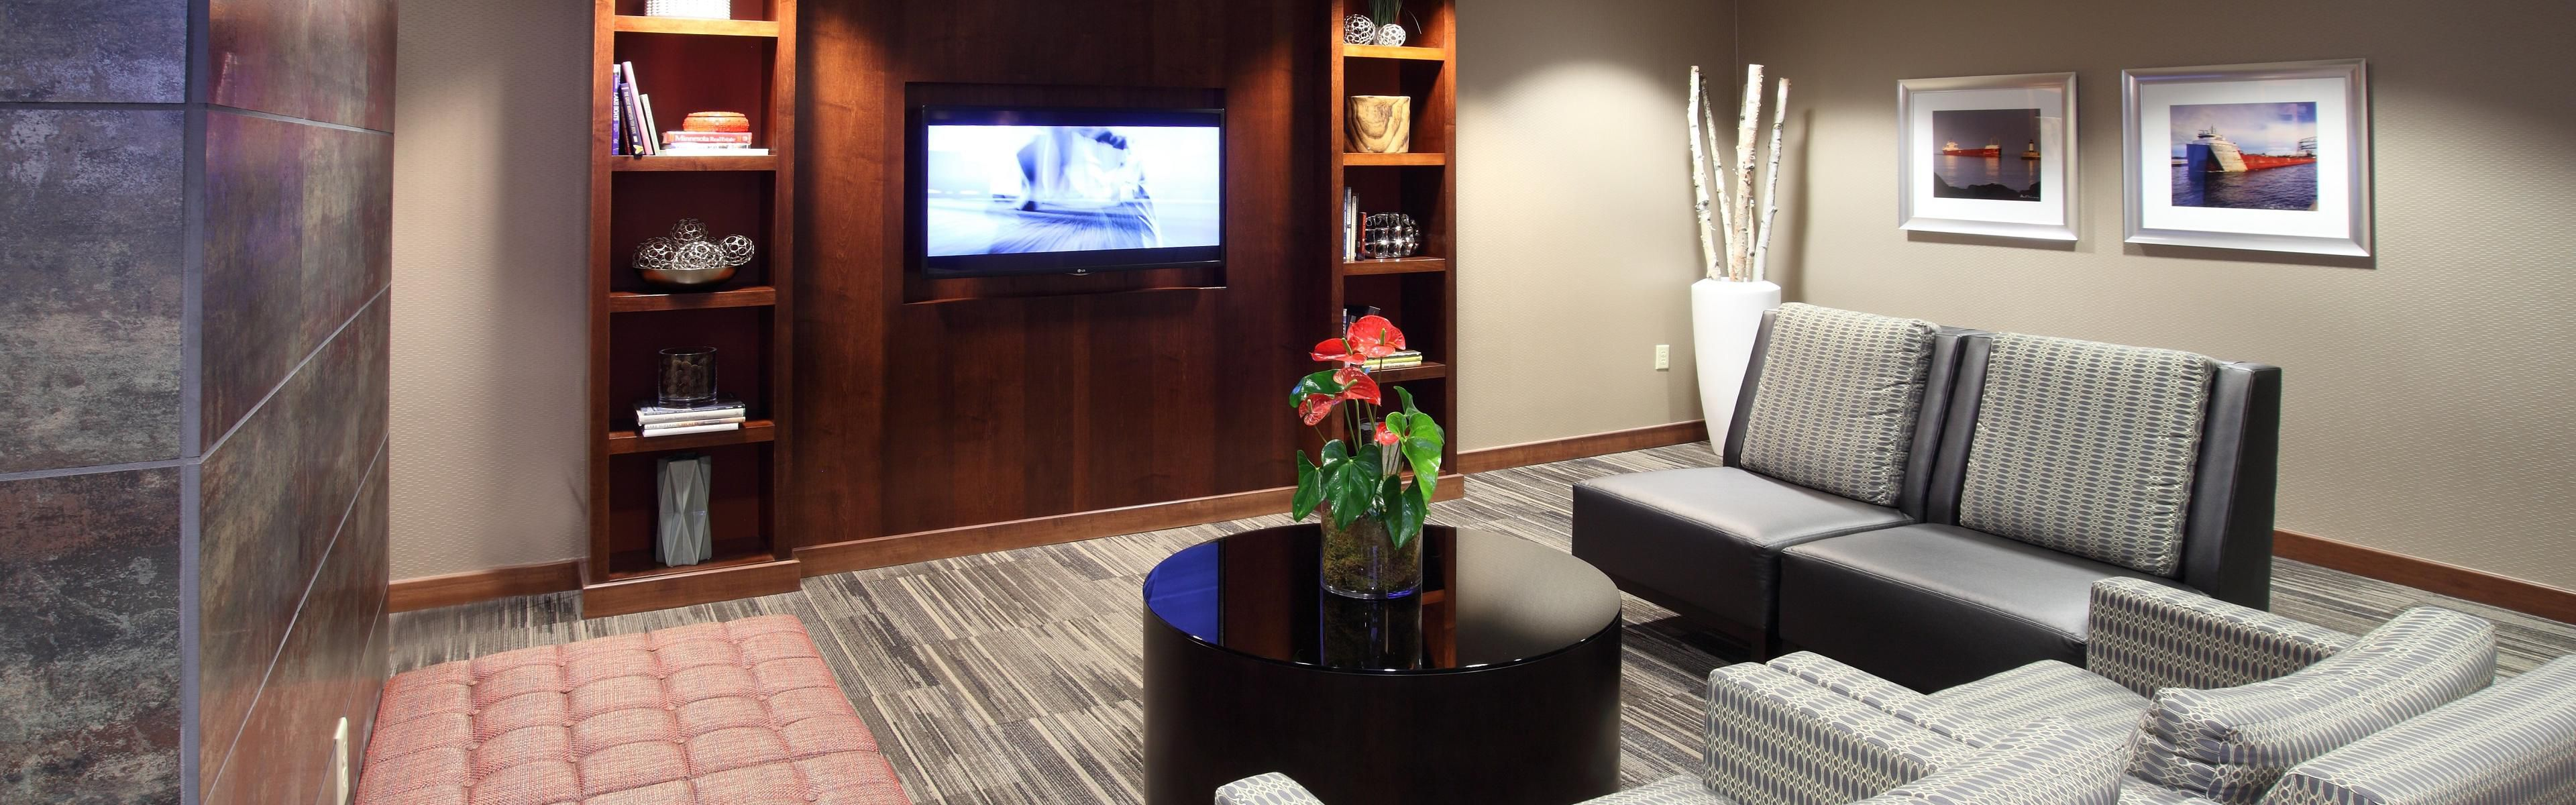 Exceptional Hotels In Duluth, MN   Downtown| Holiday Inn Hotel Duluth | IHG